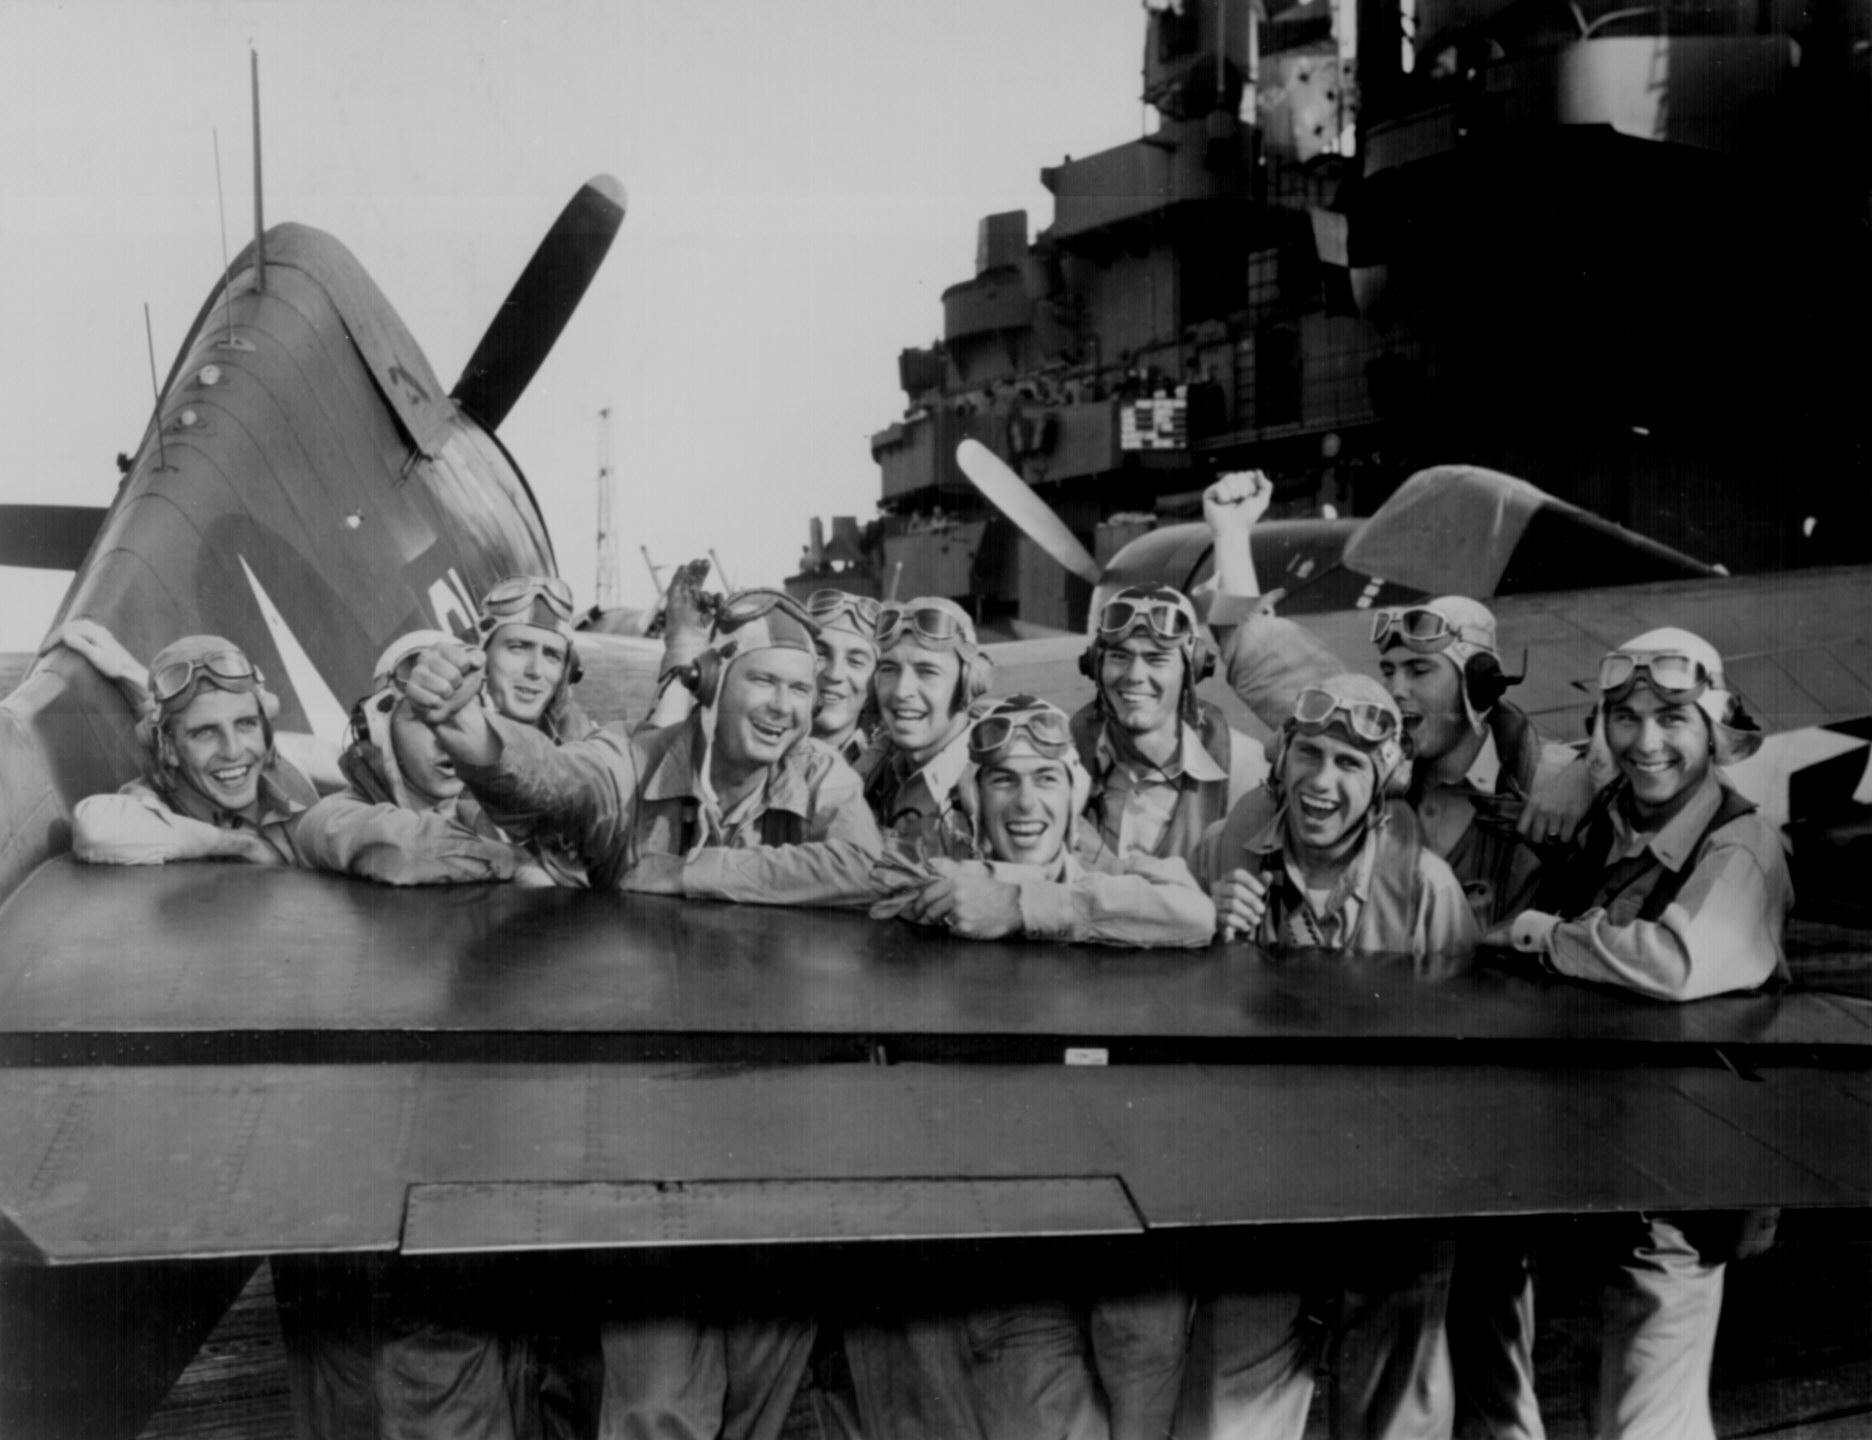 F6f Hellcat Fighter Pilots In Wwii